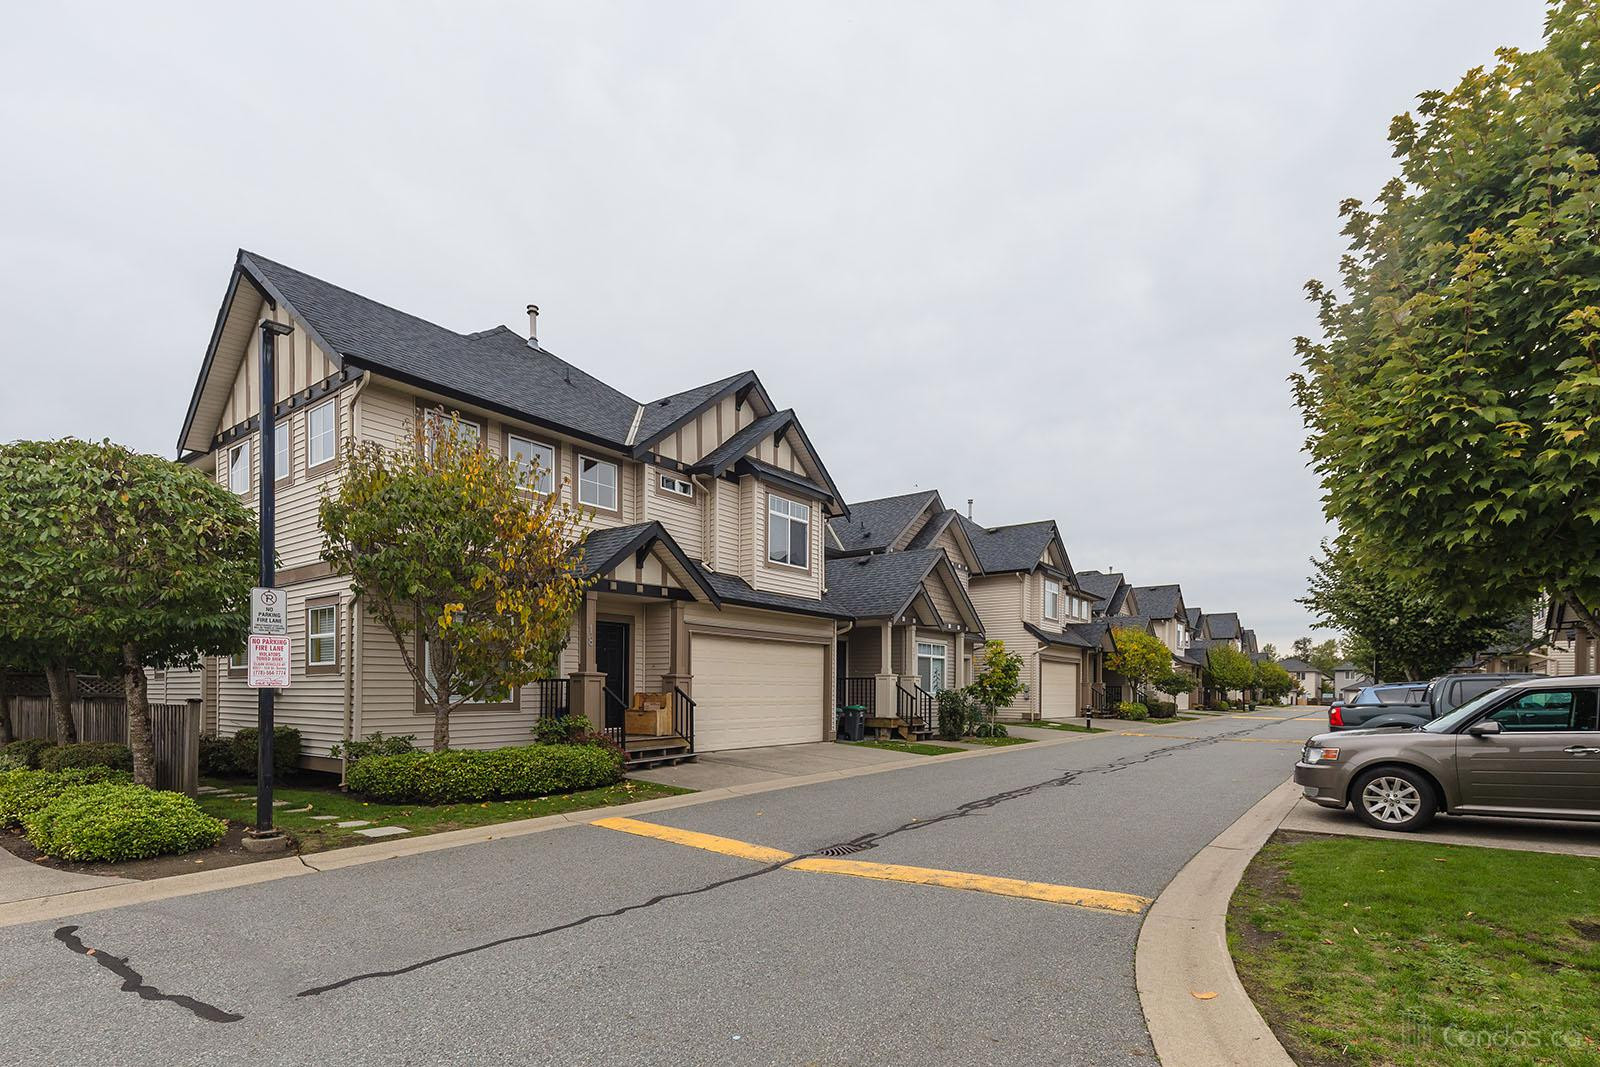 Poet's Trail at 6195 168 St, Surrey 1